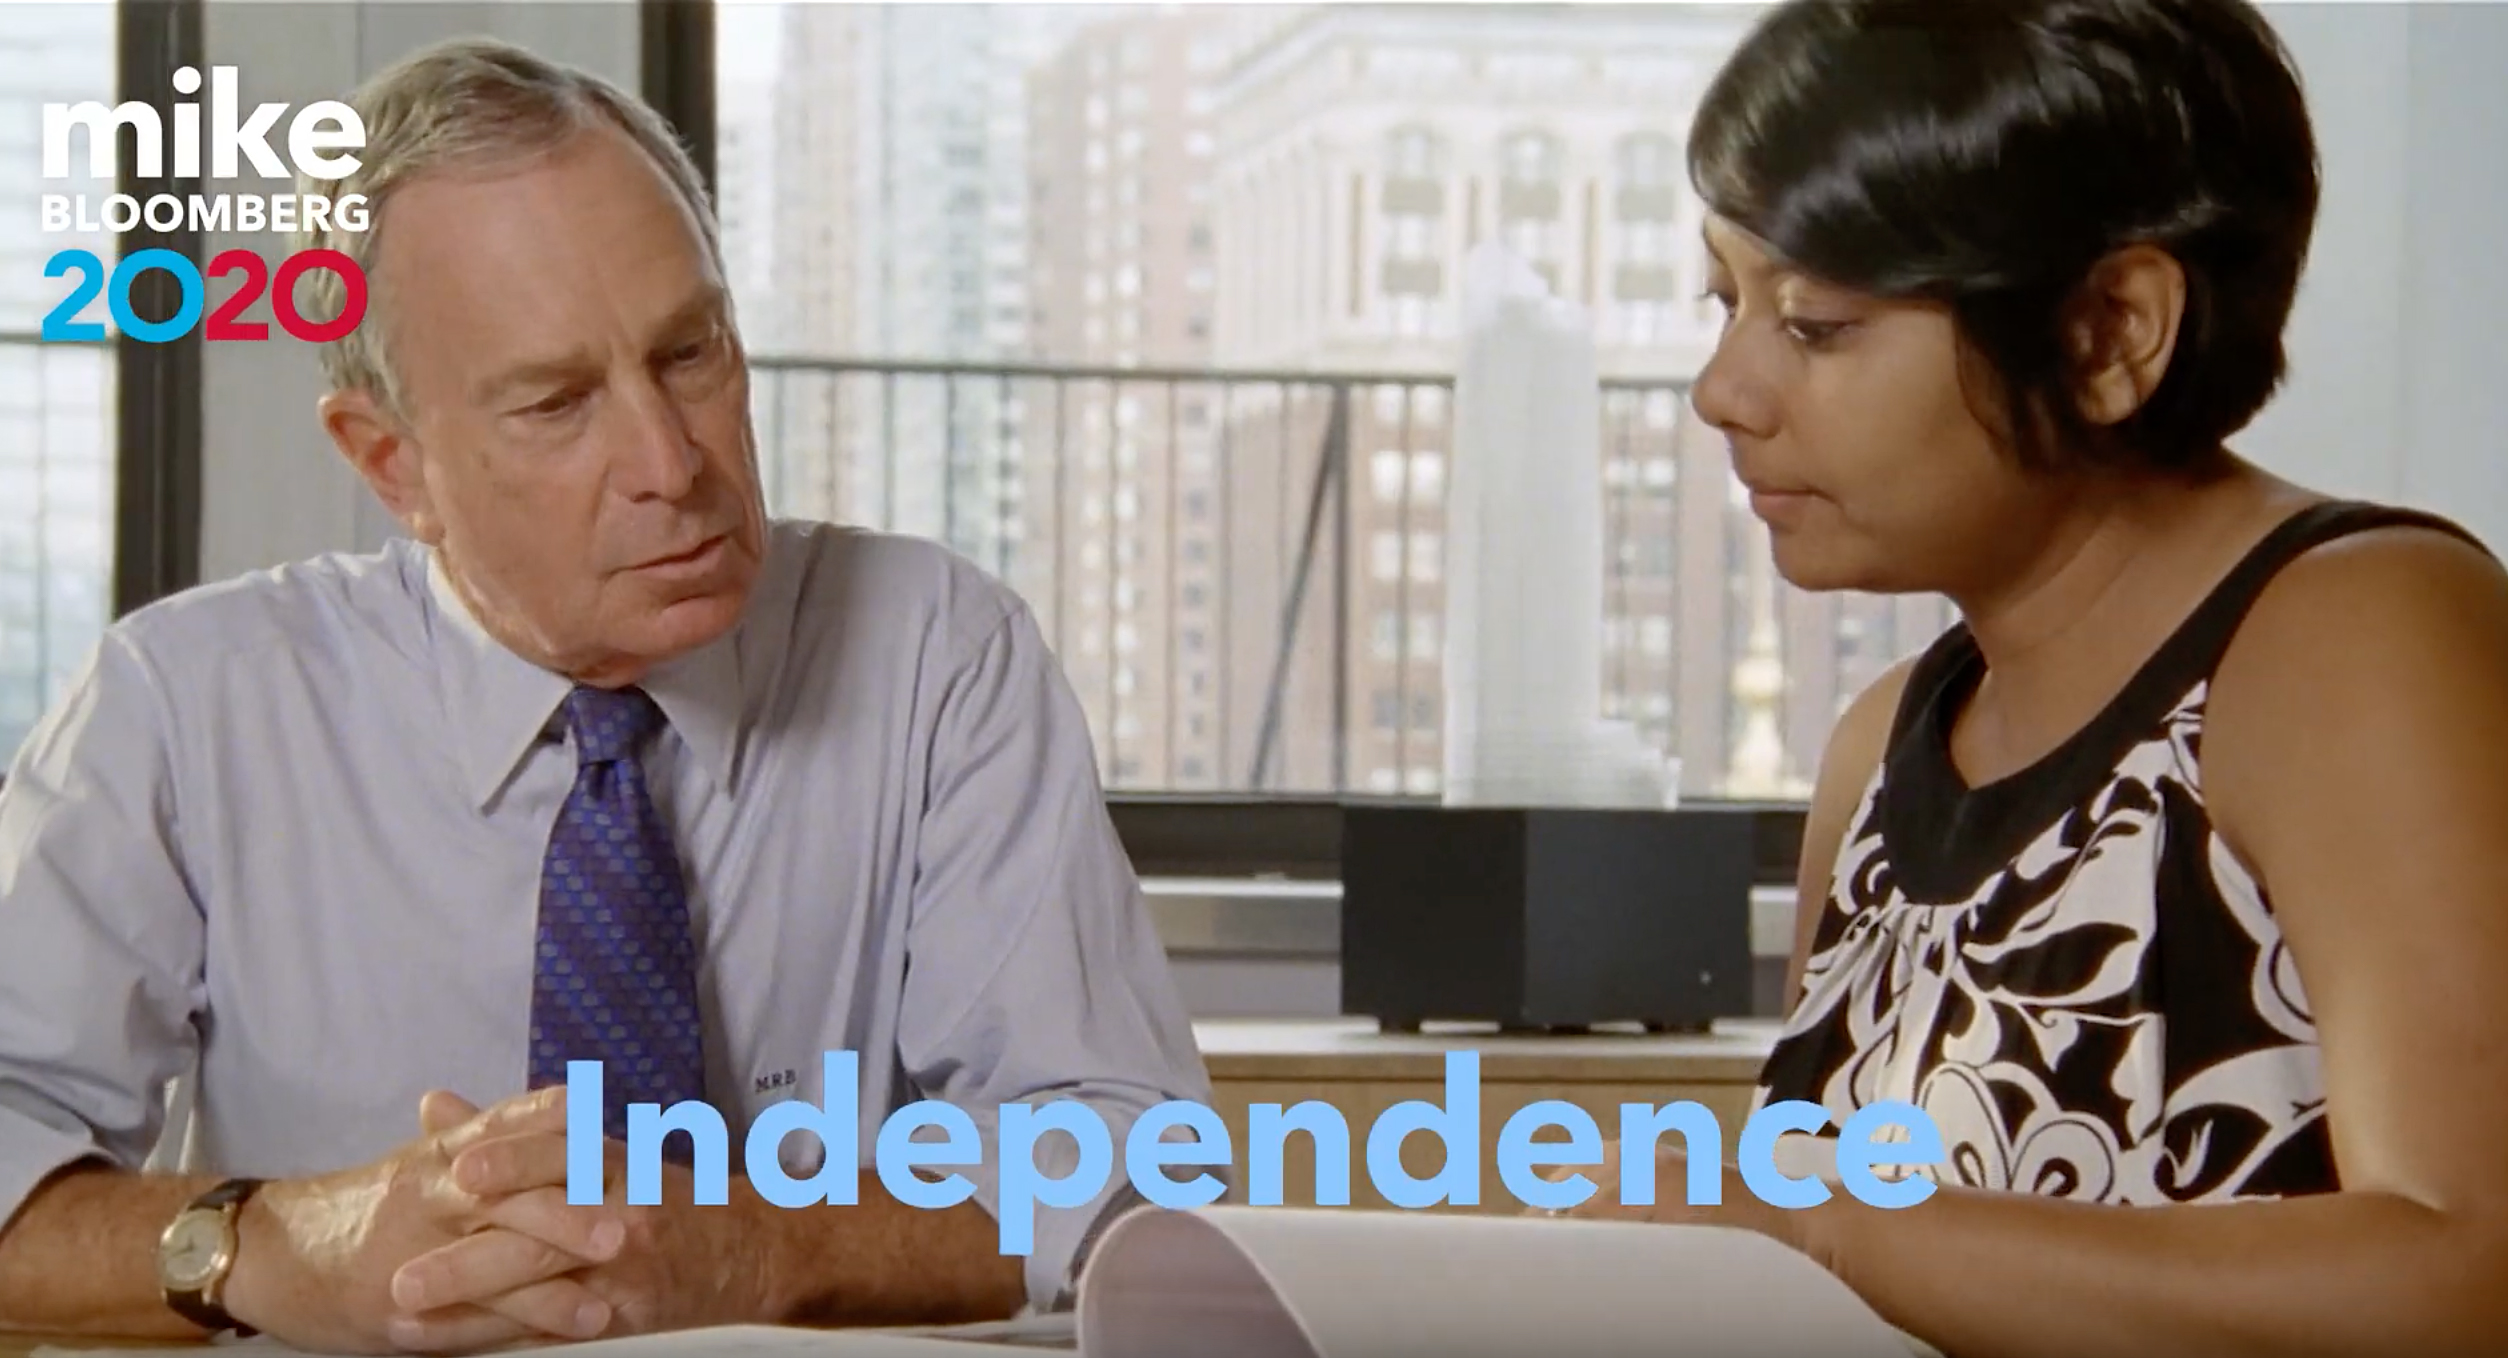 Mike's Strengths: Independence (Ad)